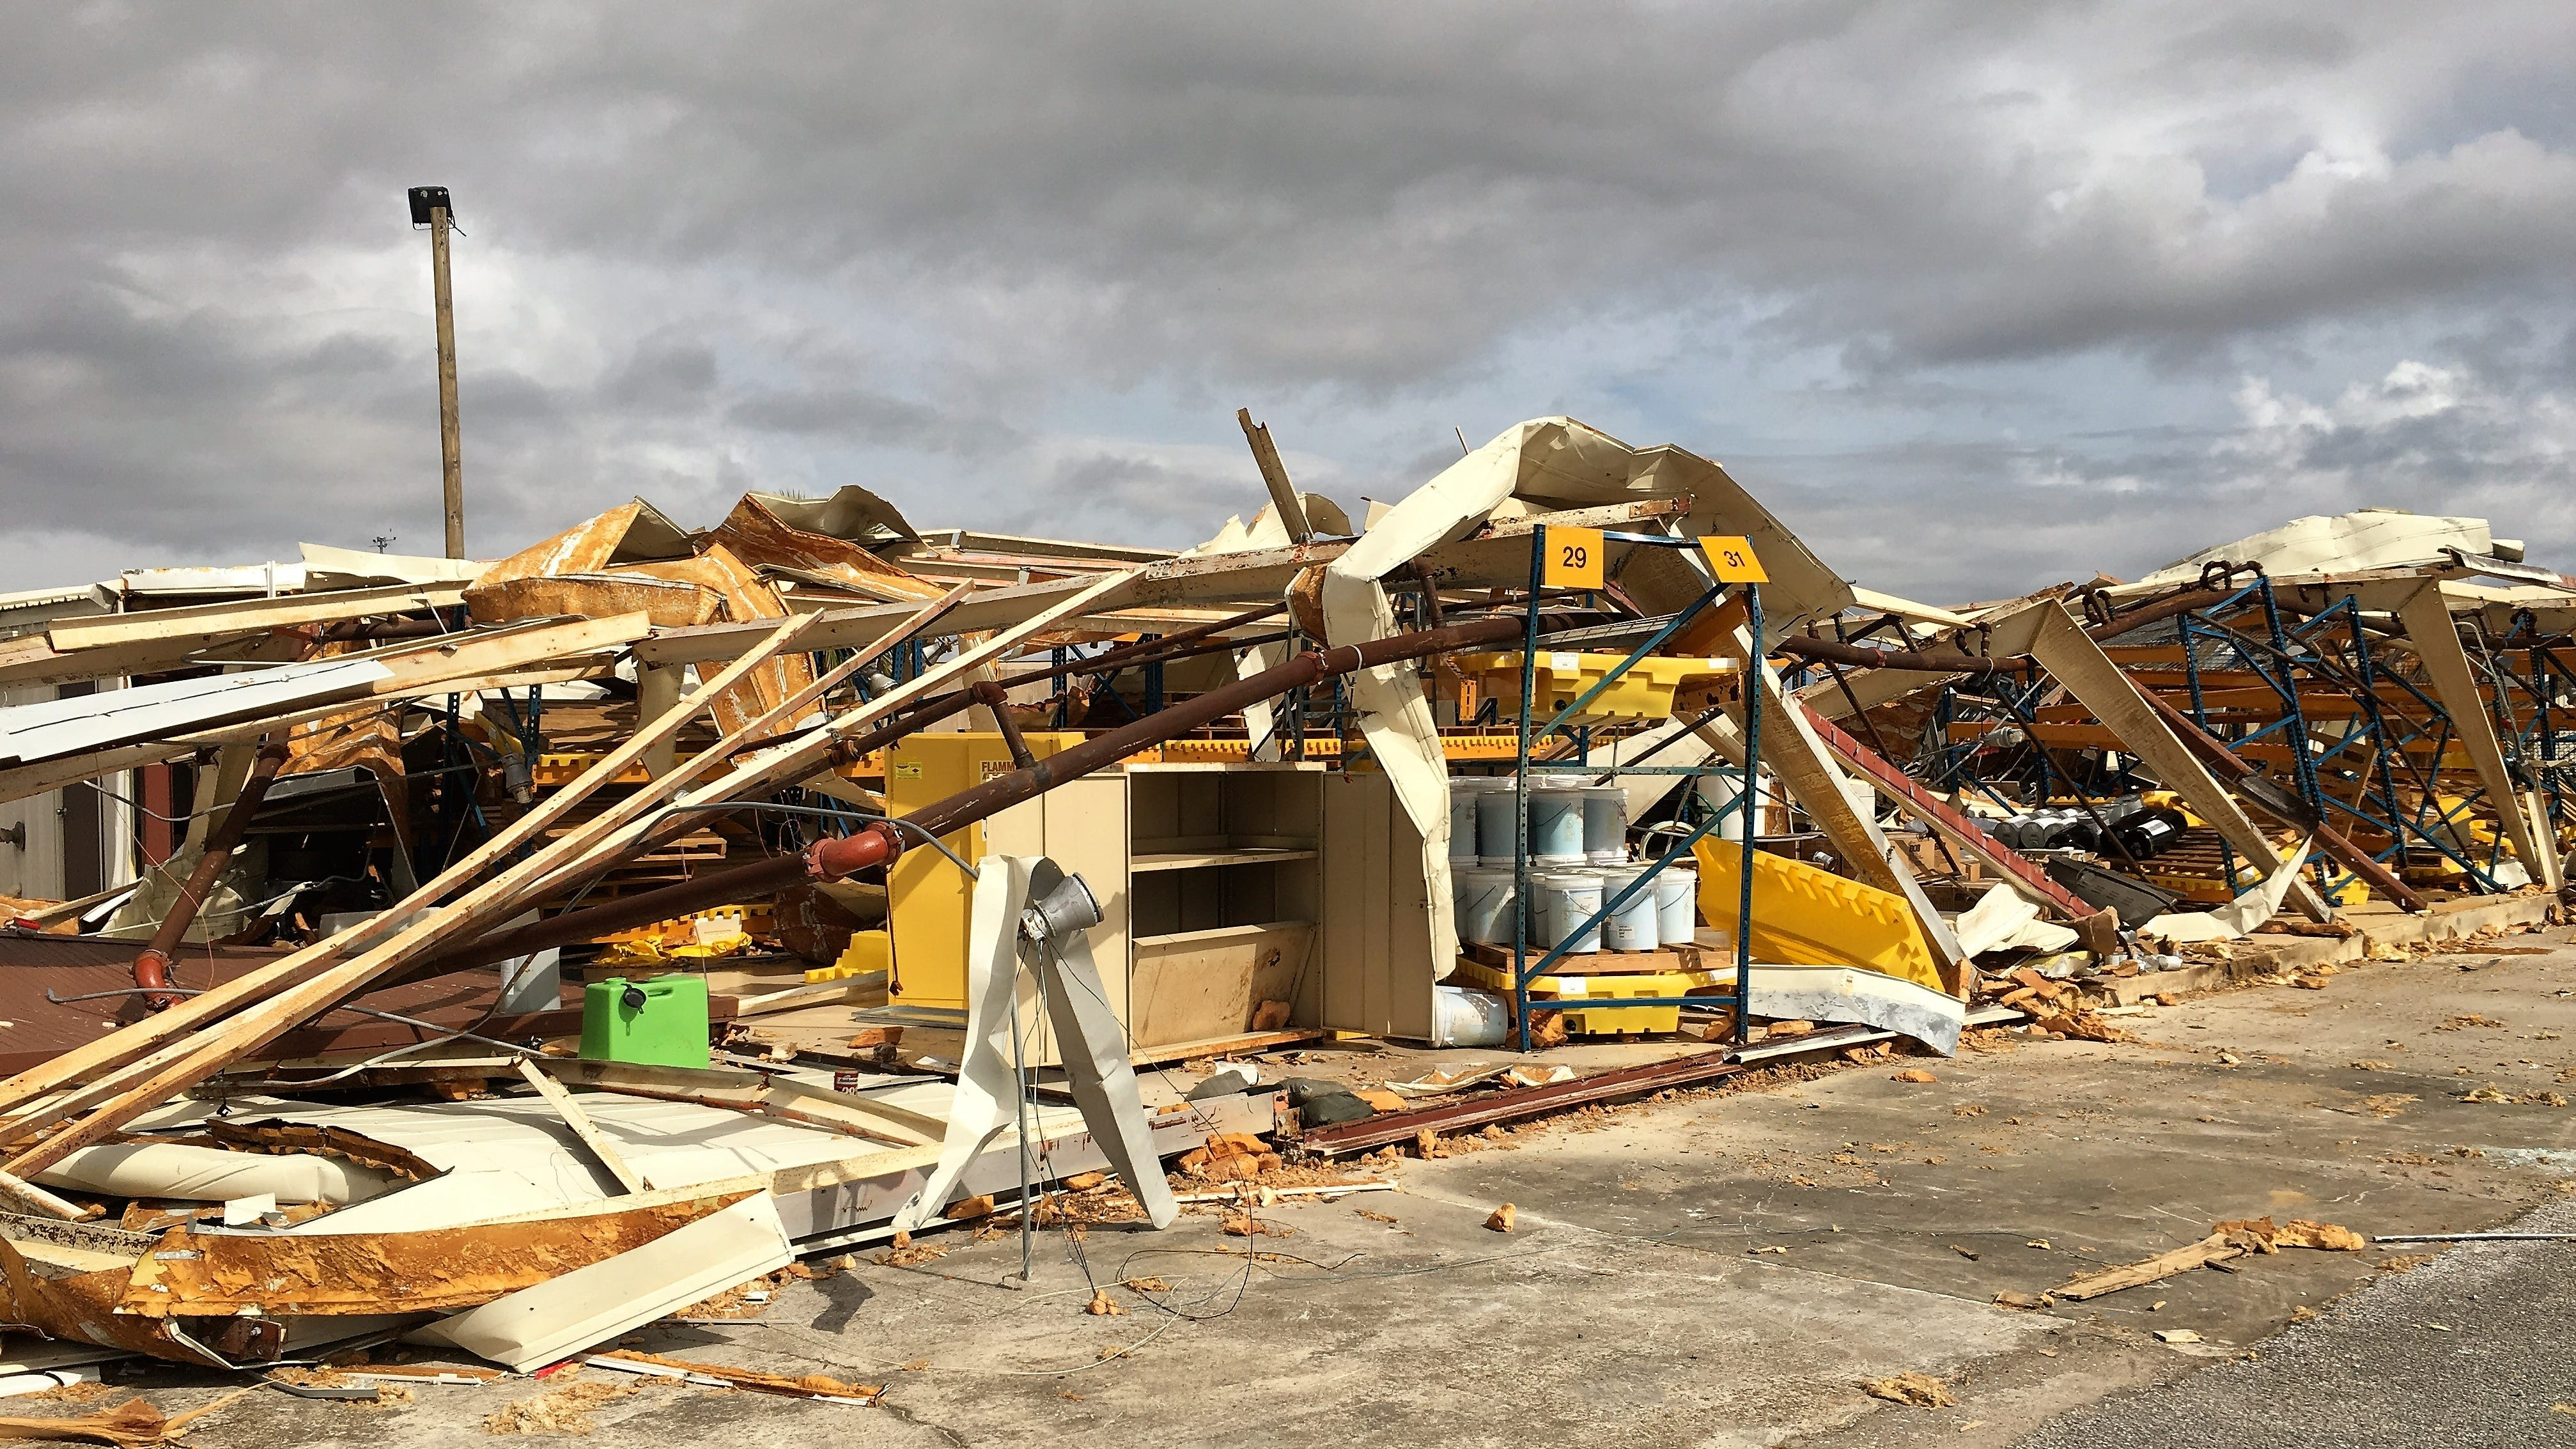 A destroyed civil engineering building on Tyndall Air Force Base, Fla., was among 1,165 environmental assets evaluated by an environmental recovery assistance team Nov. 5 – 9, 2018. The team's assessment of the environmental impact of Hurricane Michael on Tyndall AFB is helping recovery and rebuilding efforts at the base.